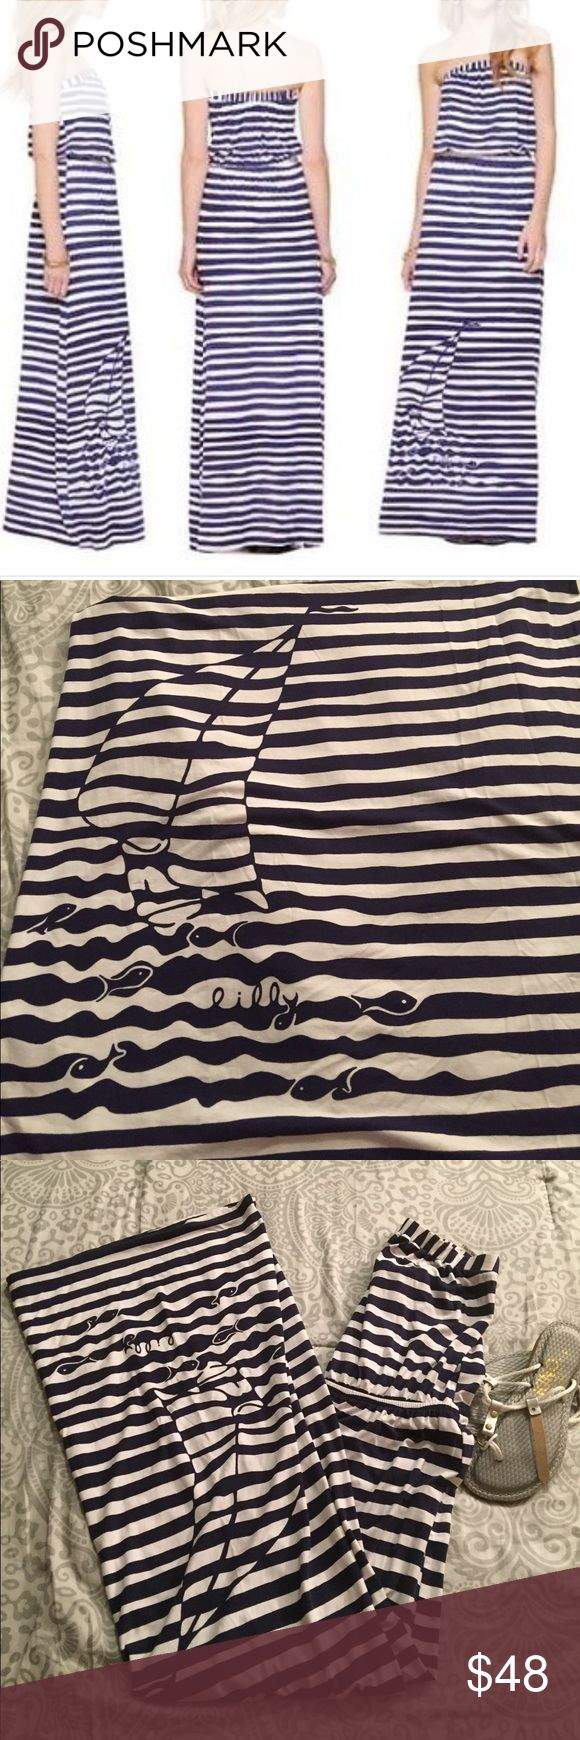 """Lilly Pulitzer Nautical Maxi Dress- size S Navy and white striped strapless Lilly Pulitzer emmett yacht yard maxi dress in size small.  Sailboat design near bottom of dress. Approximately 52.5"""" long. Lilly Pulitzer Dresses Maxi"""